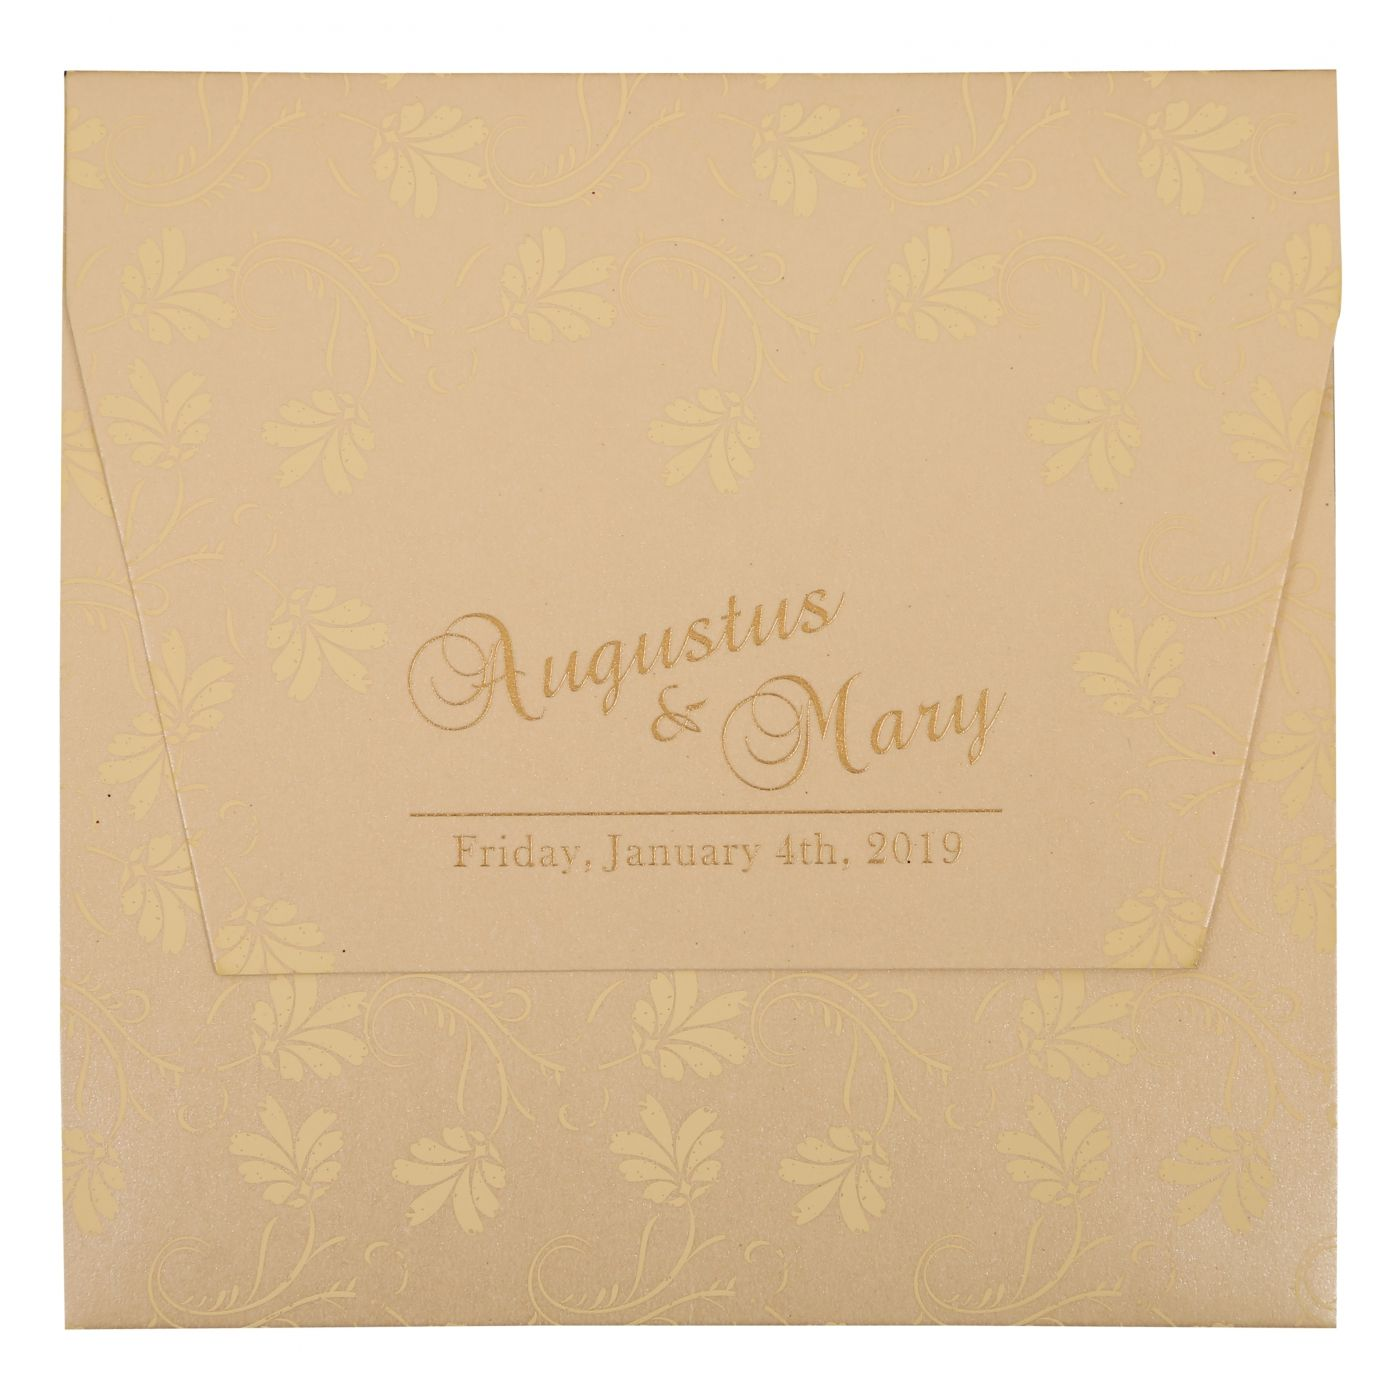 BEIGE SHIMMERY SCREEN PRINTED WEDDING INVITATION : CD-803E - IndianWeddingCards